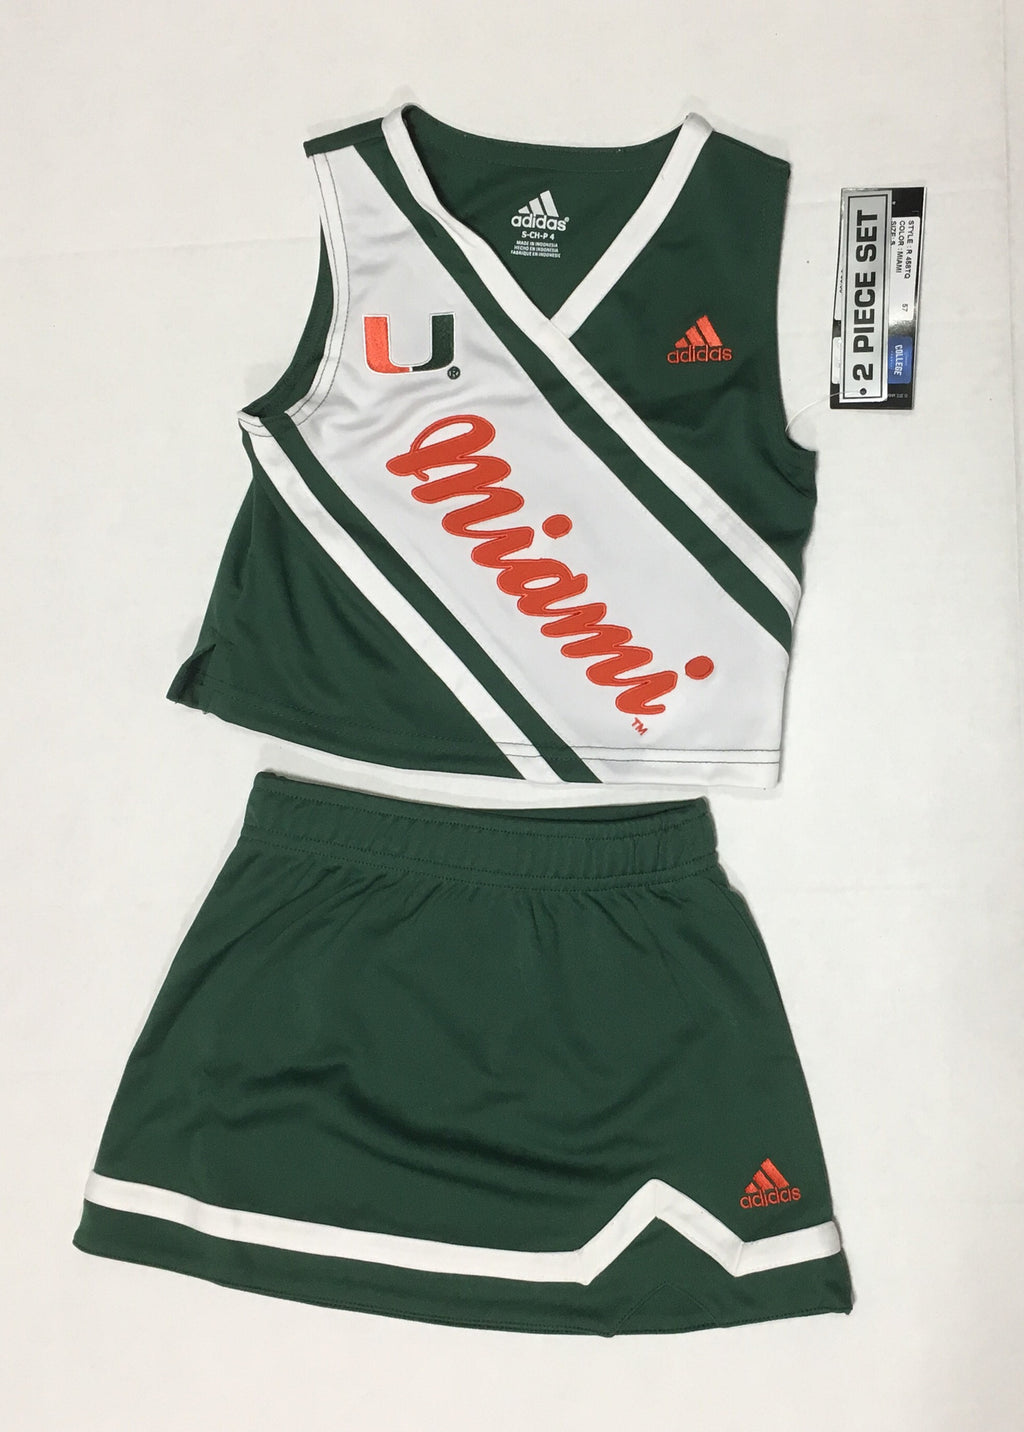 Miami Hurricanes Kids 2 Piece Cheerleader Set - Green - CanesWear at Miami FanWear Kid's Apparel Adidas Group CanesWear at Miami FanWear